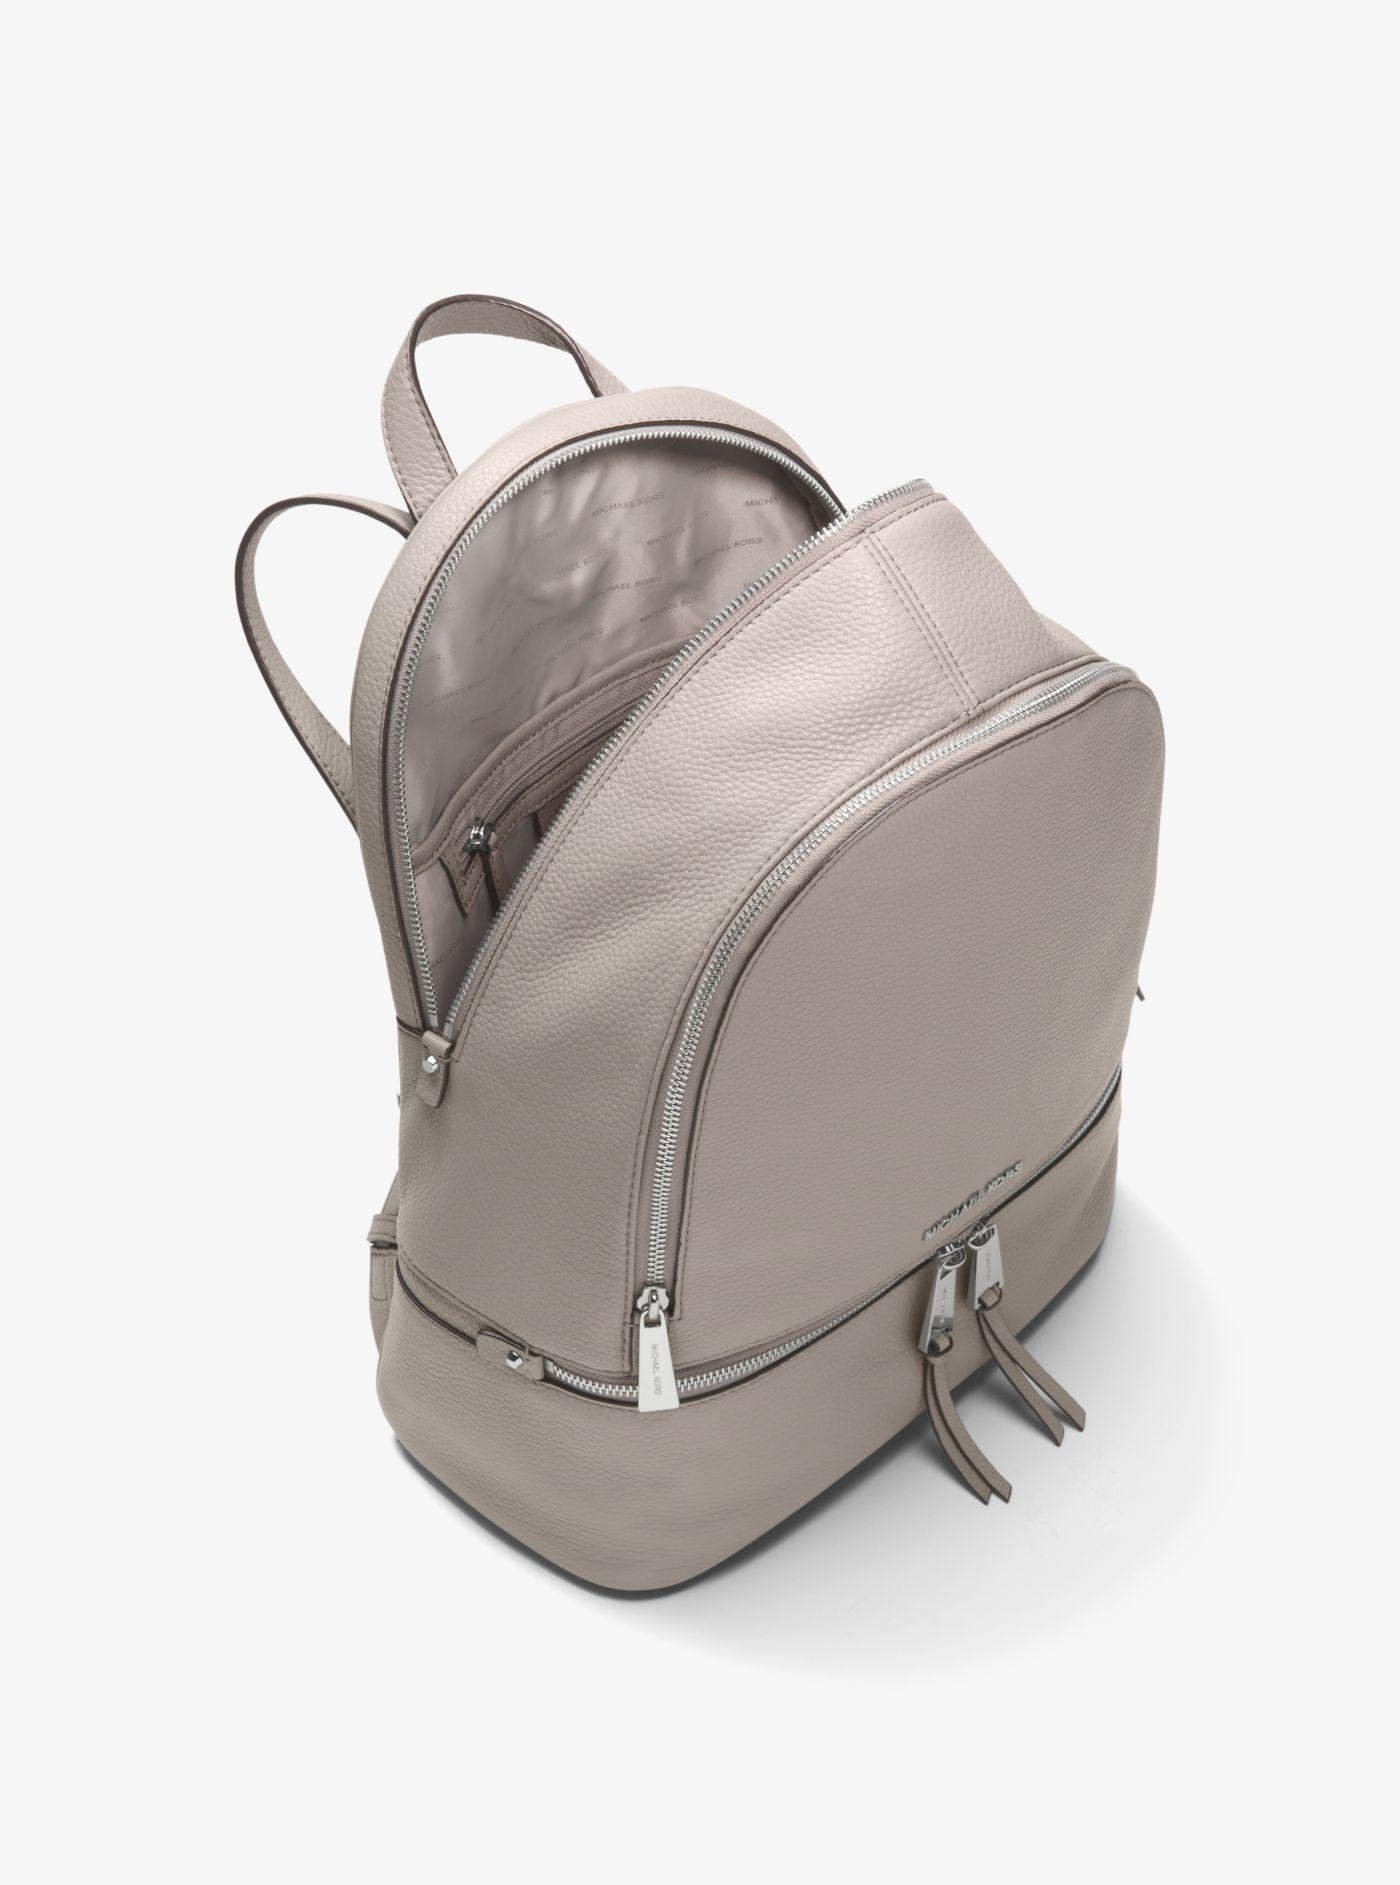 dc643ef39dc252 Michael Kors Gray Leather Backpack – Patmo Technologies Limited